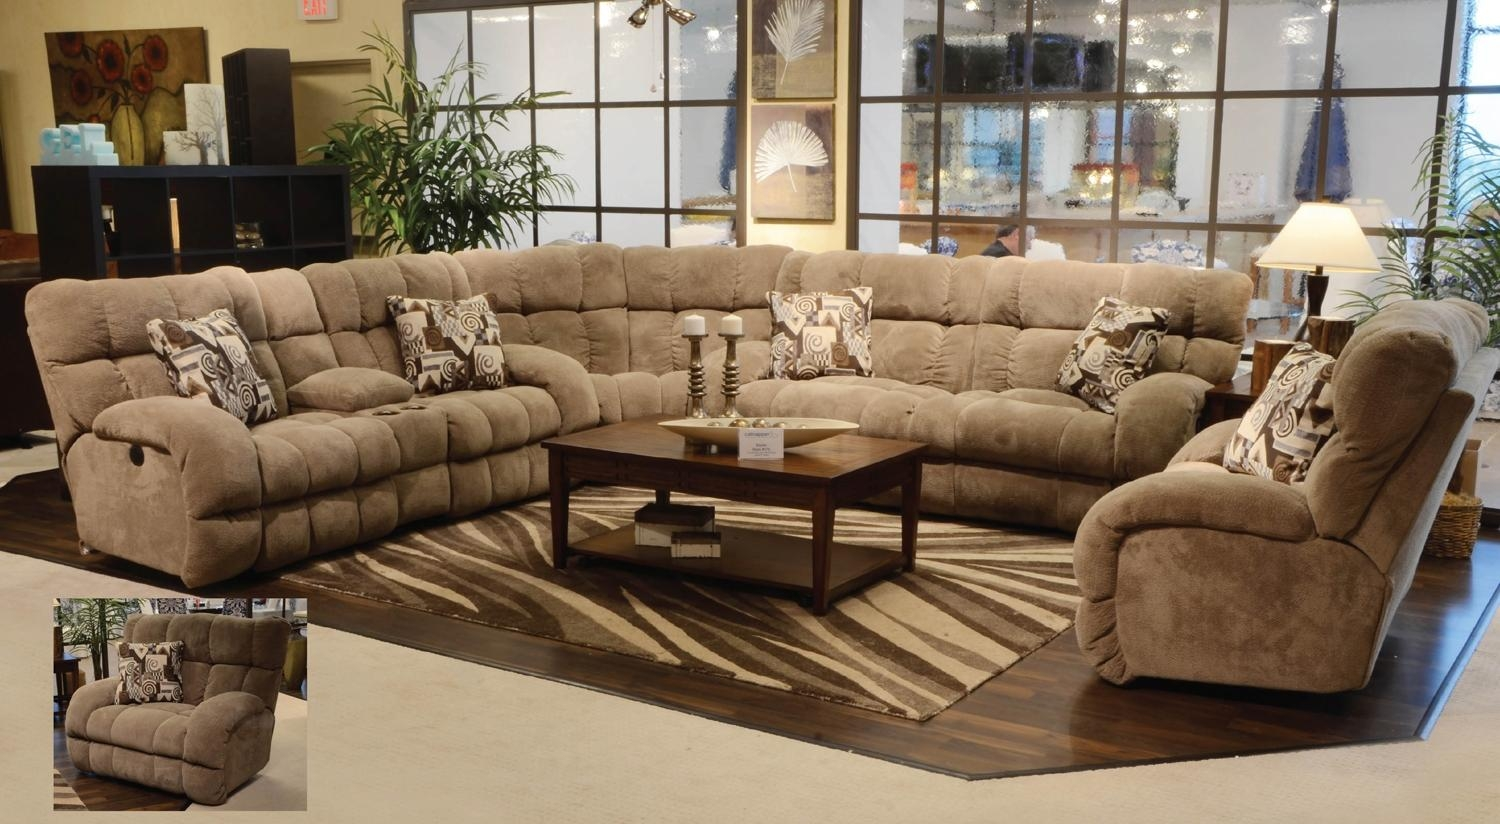 Sofas Center : Large Sectional Sofas With Chaise Extra Wilmington Throughout Sectional Sofa With Large Ottoman (Image 15 of 20)